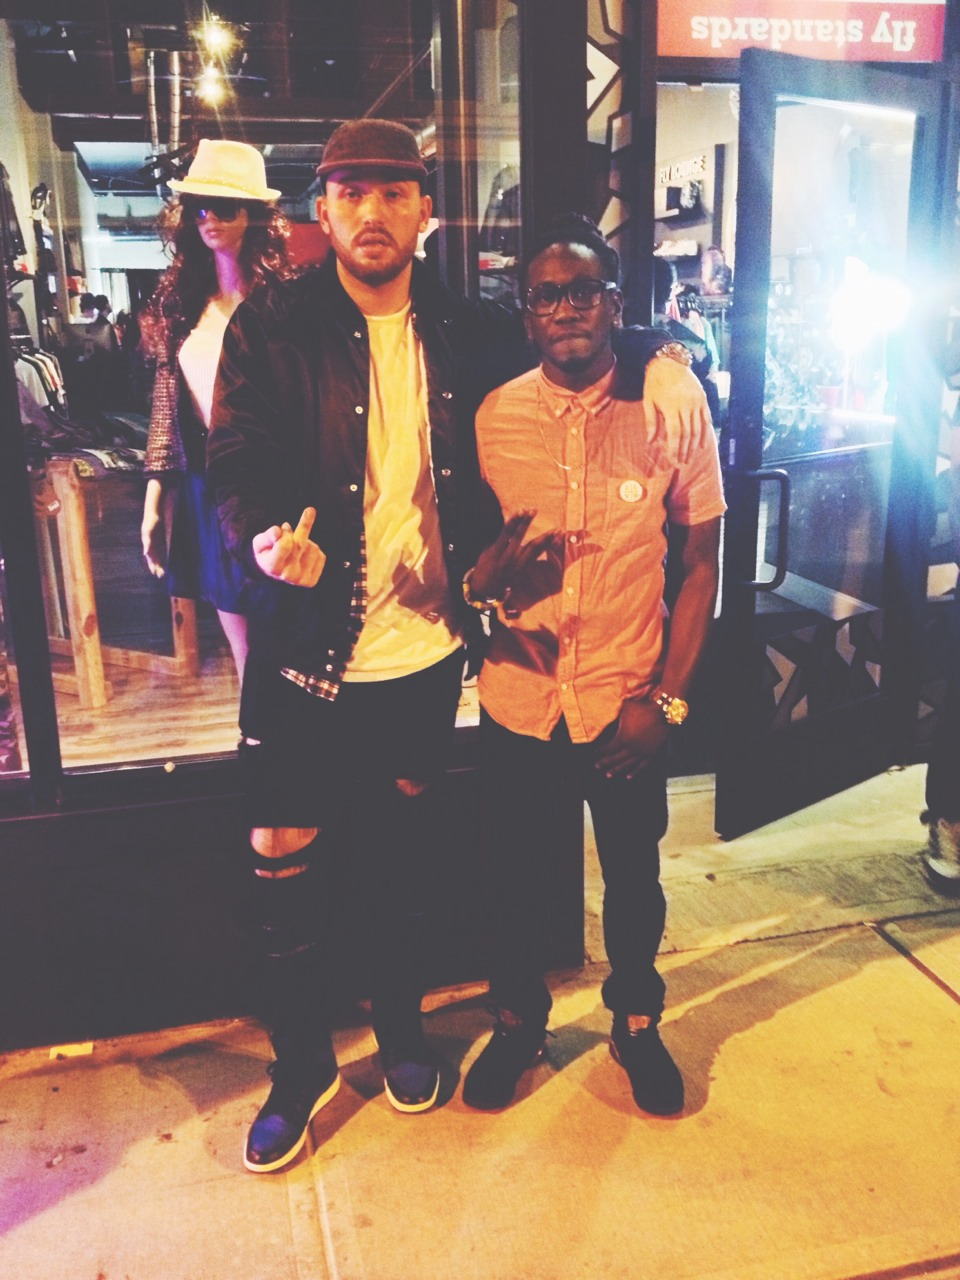 The bro G4shi and I. Very dope artist. Future shit. 2LV